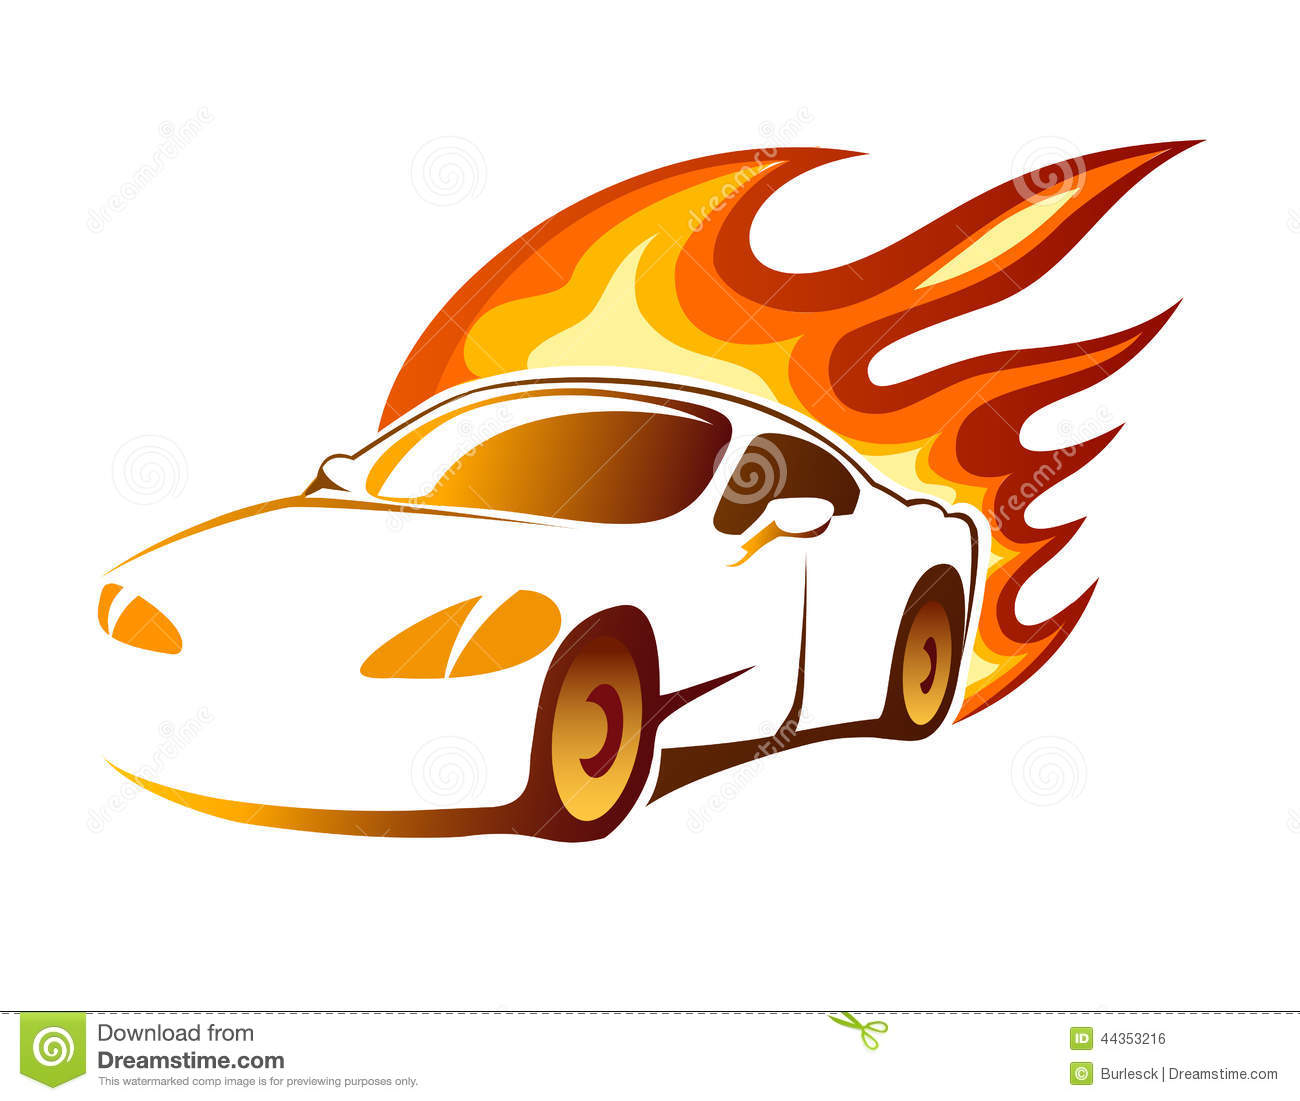 Flaming car clipart clipart royalty free Flaming car clipart - ClipartFest clipart royalty free